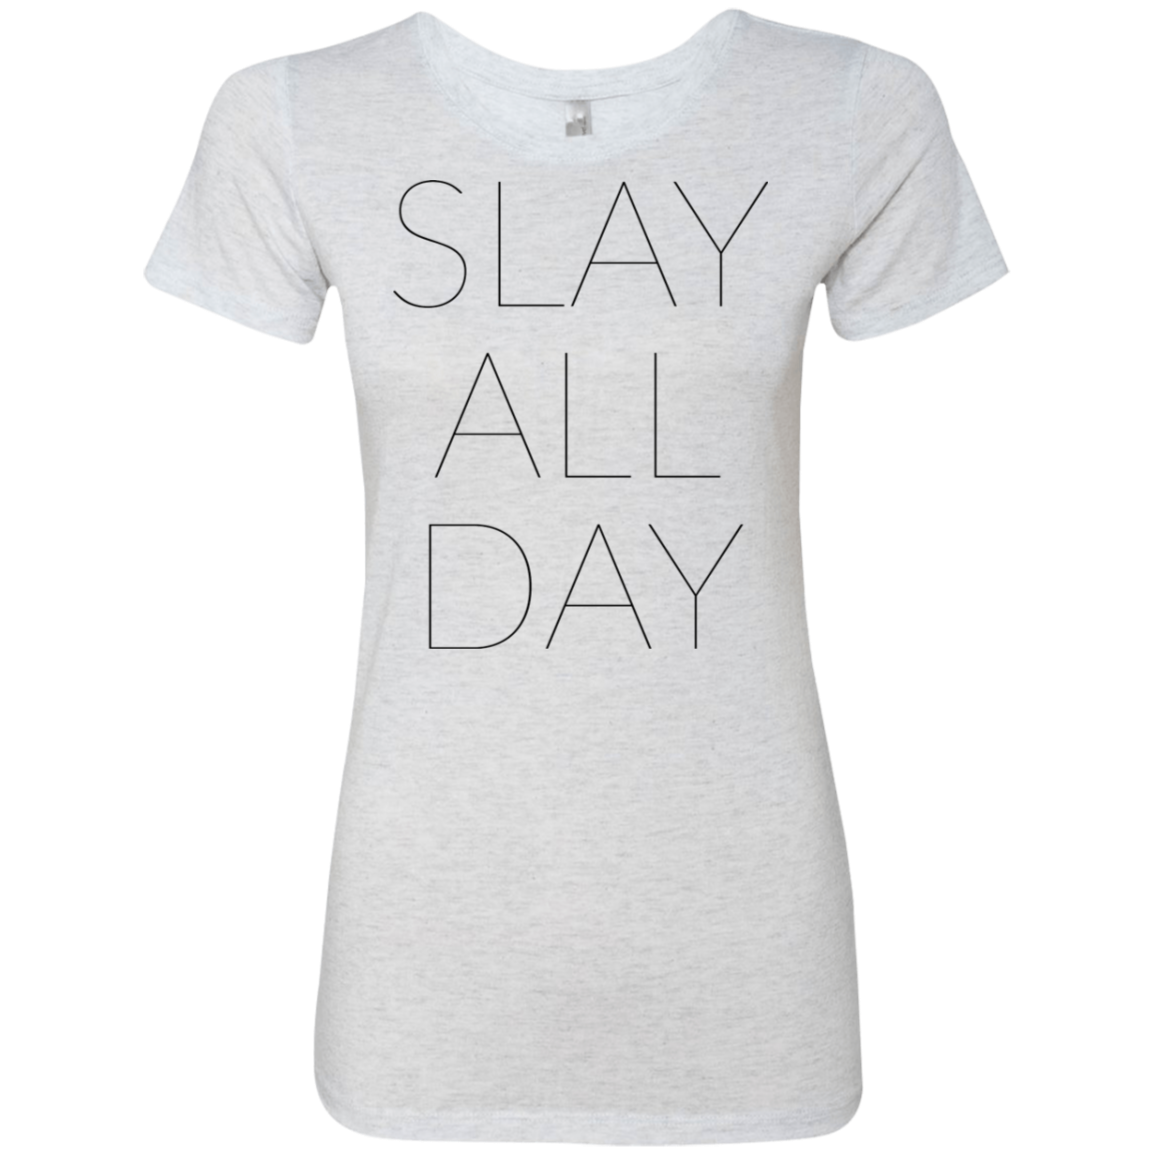 Slay All Day Women's Classic Tee